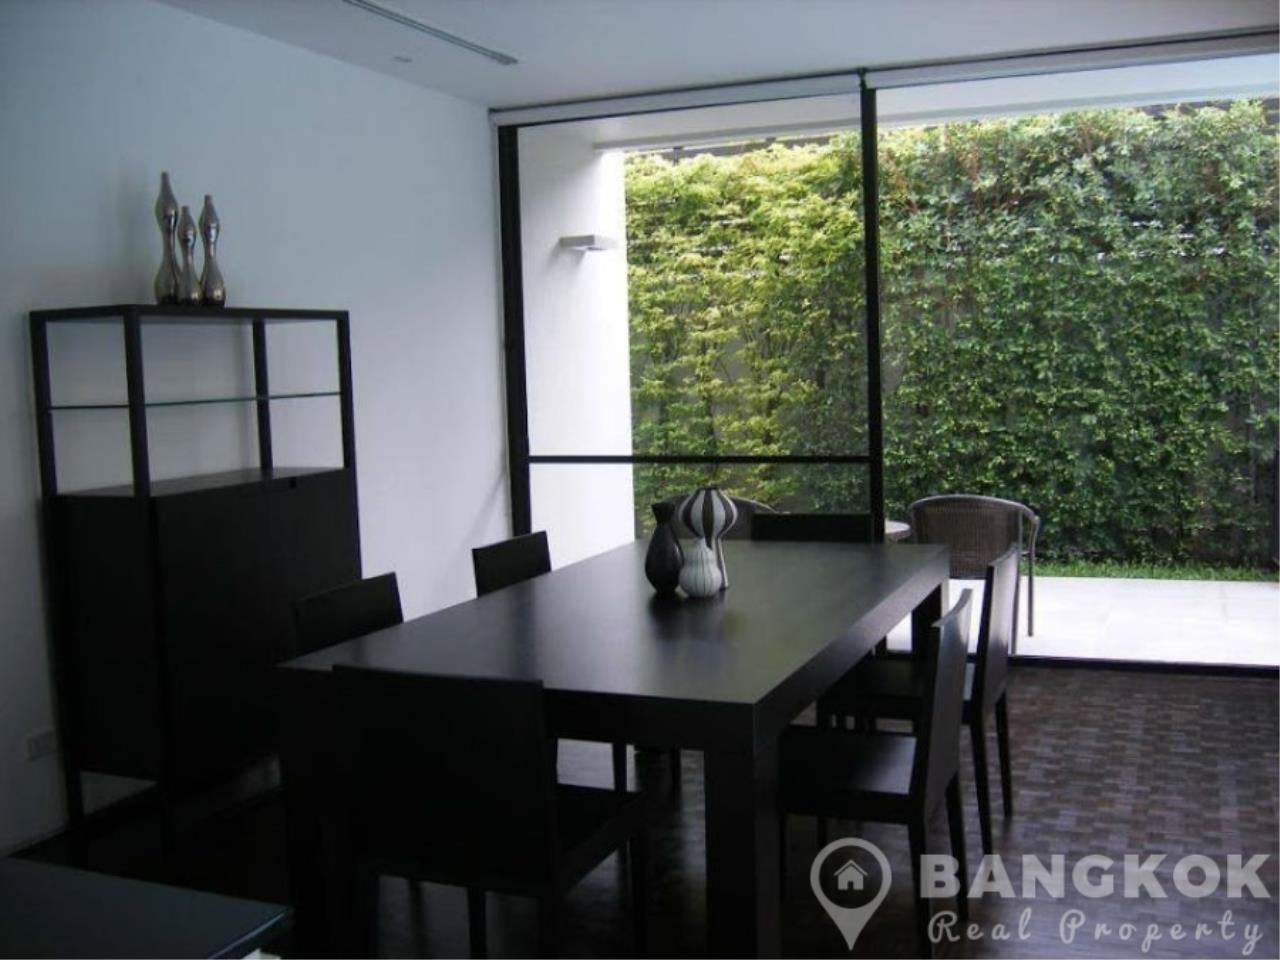 Bangkok Real Property Agency's Modern Detached 4 Bed Thonglor House with Private Pool 4